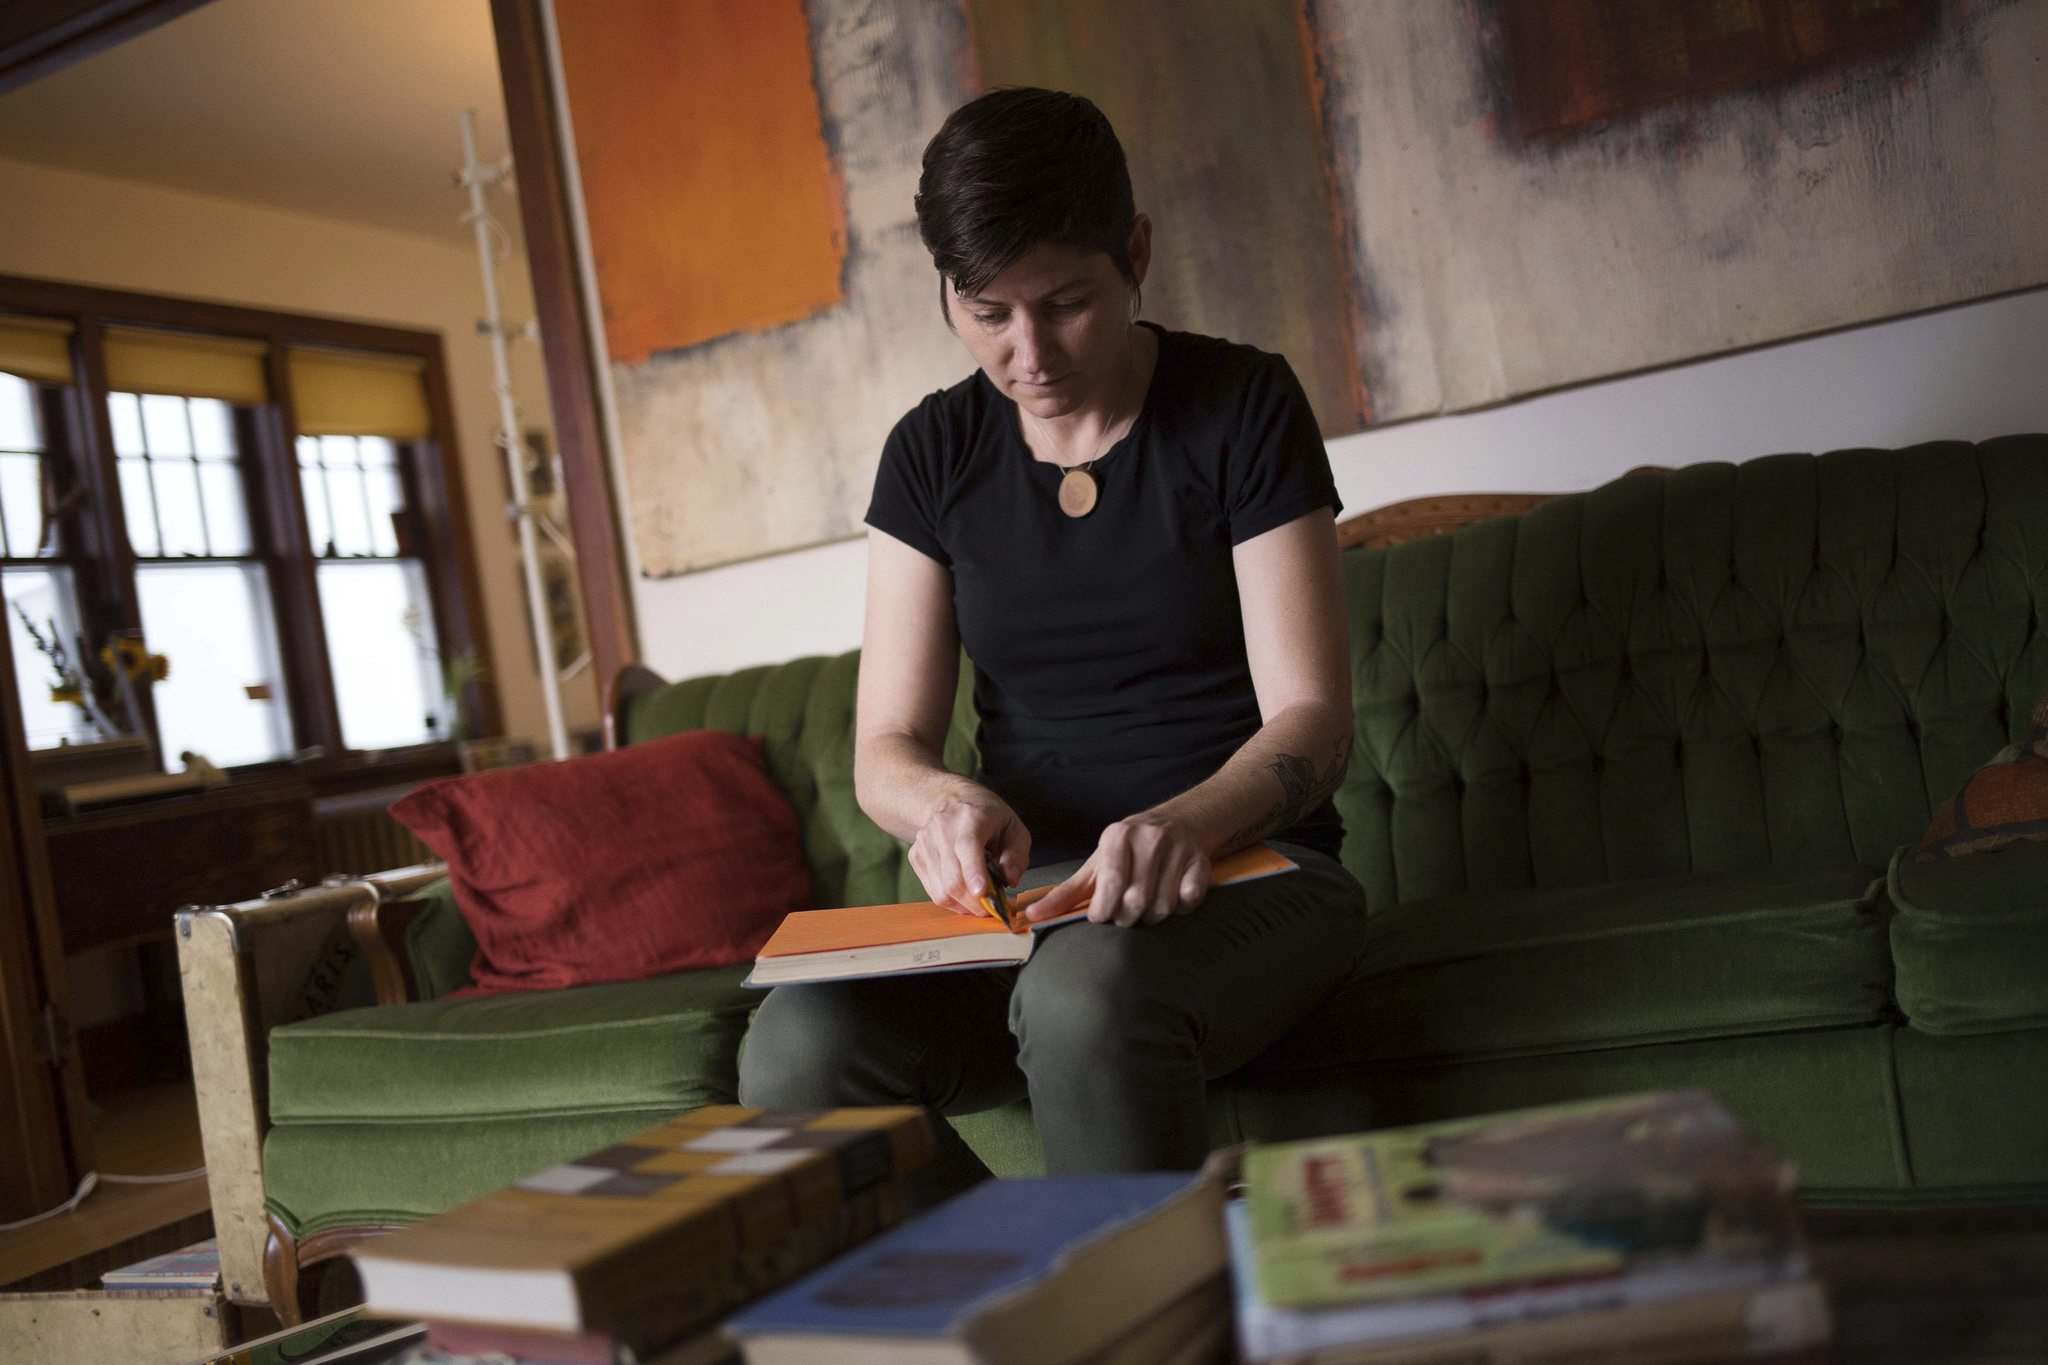 JEN DOERKSEN/WINNIPEG FREE PRESS</p><p>Julie Epp makes journals from old books. She starts by cutting off the front and back covers, and any pages inside that she will use for decoration.